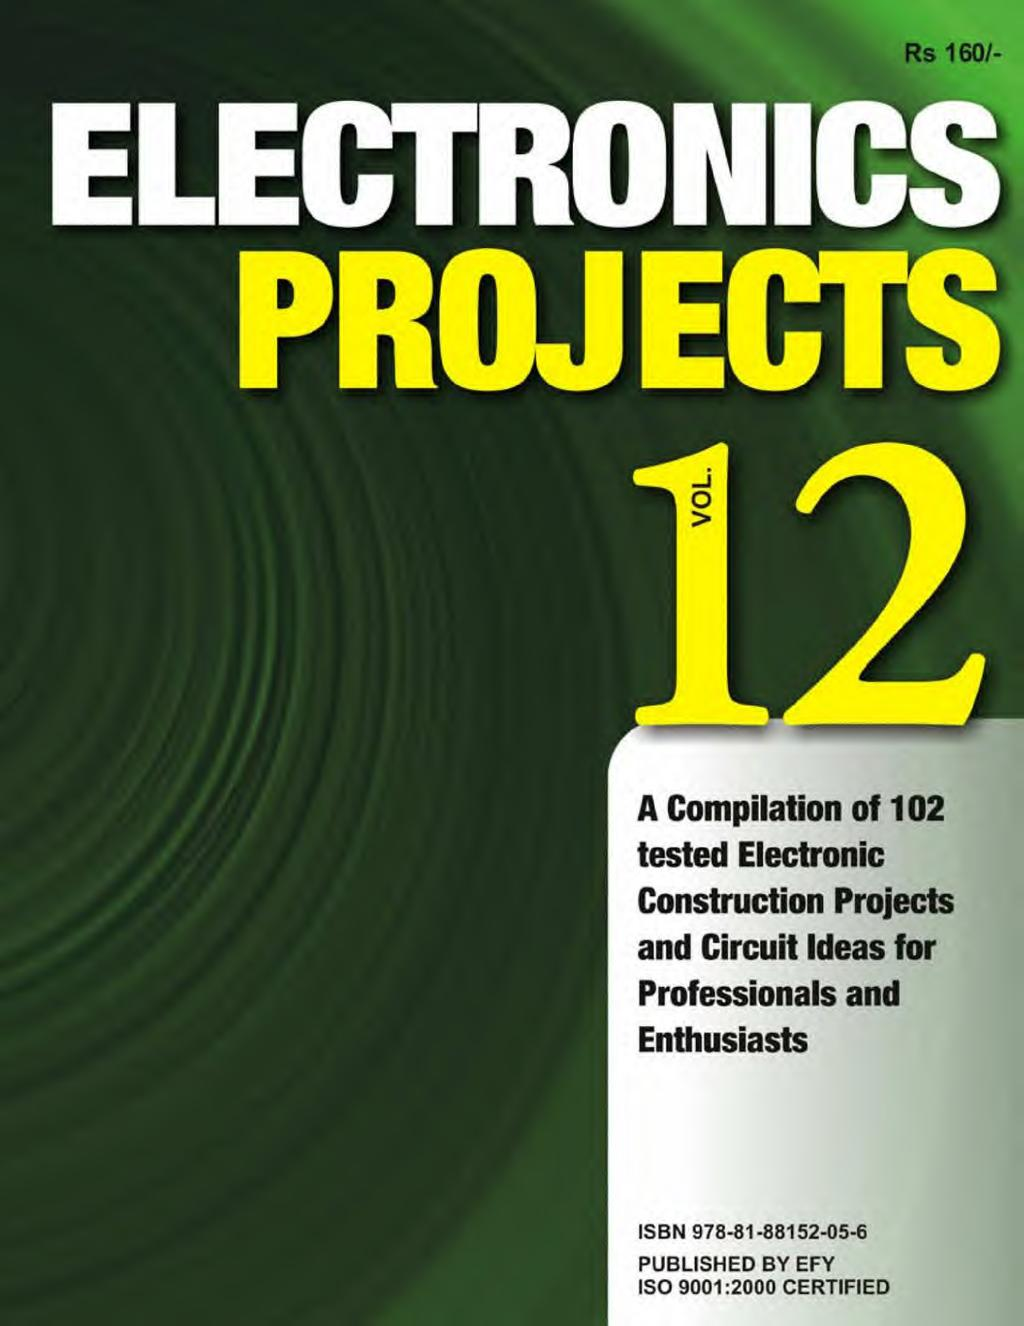 A Compilation Of 102 And Circuit Ideas For Construction Projects Circuitry 7400 Test Tested Electronic